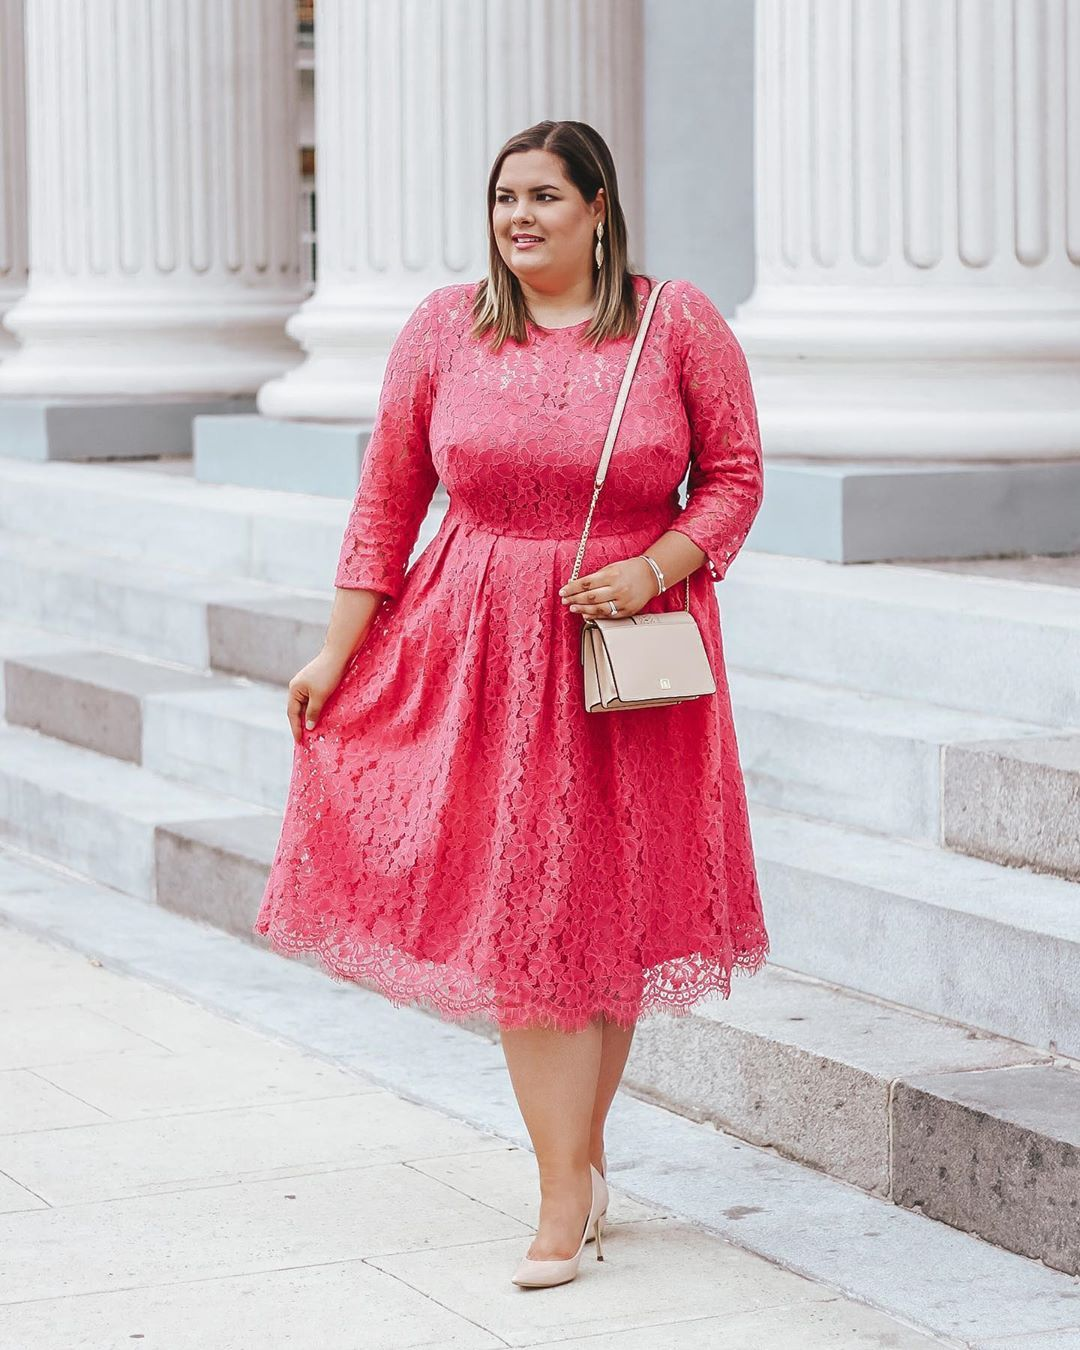 Pin On Overweight Fashion [ 1350 x 1080 Pixel ]